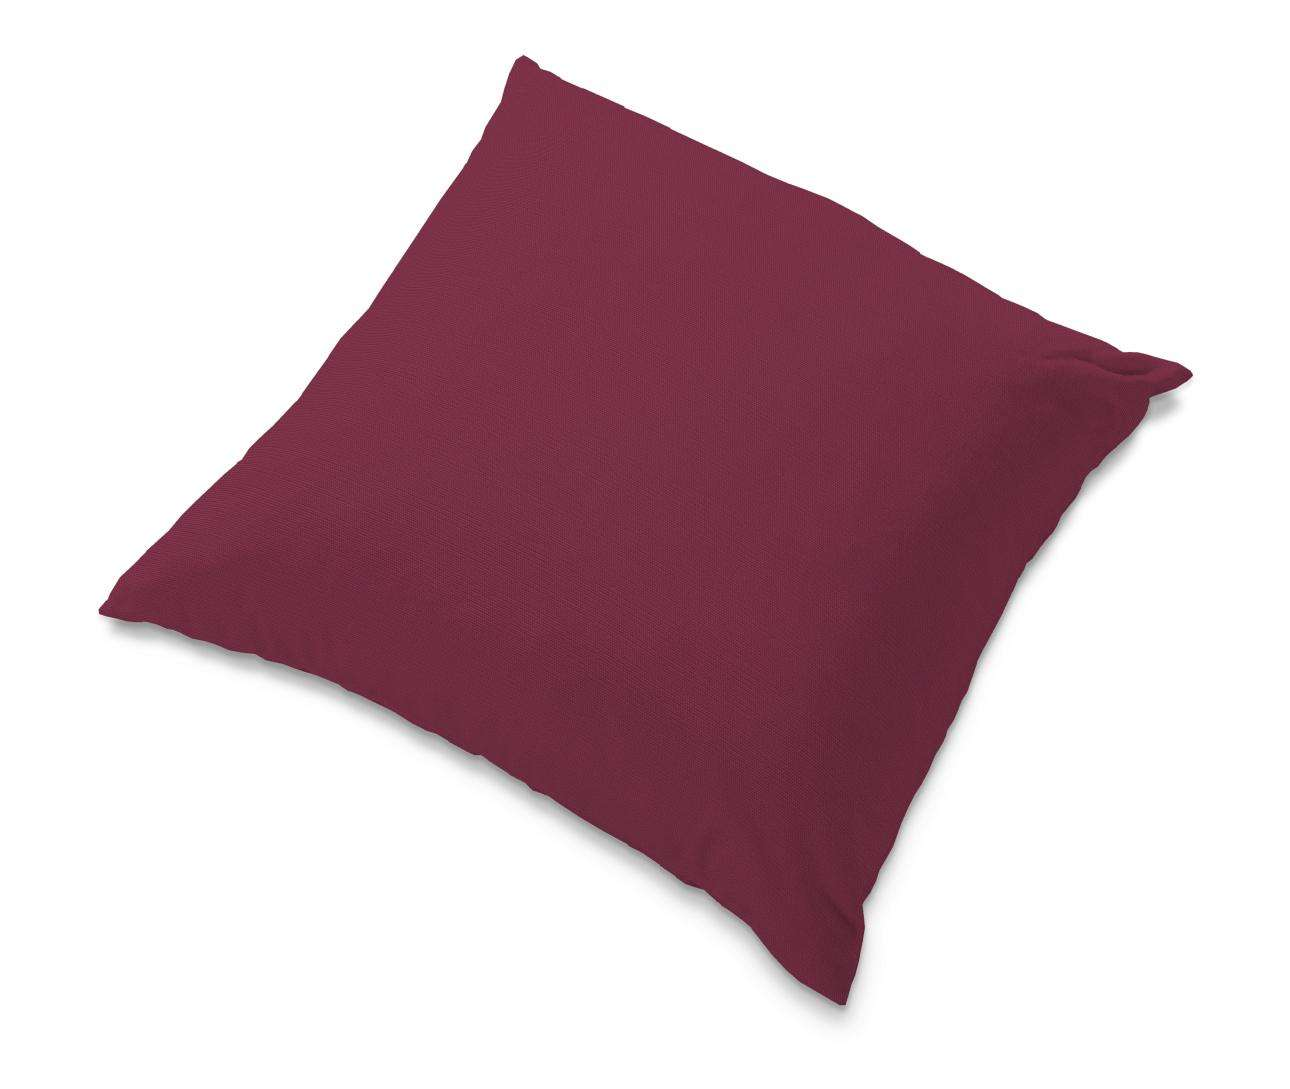 Tomelilla cushion cover 55 × 55 cm (22 × 22 inch) in collection Panama Cotton, fabric: 702-32